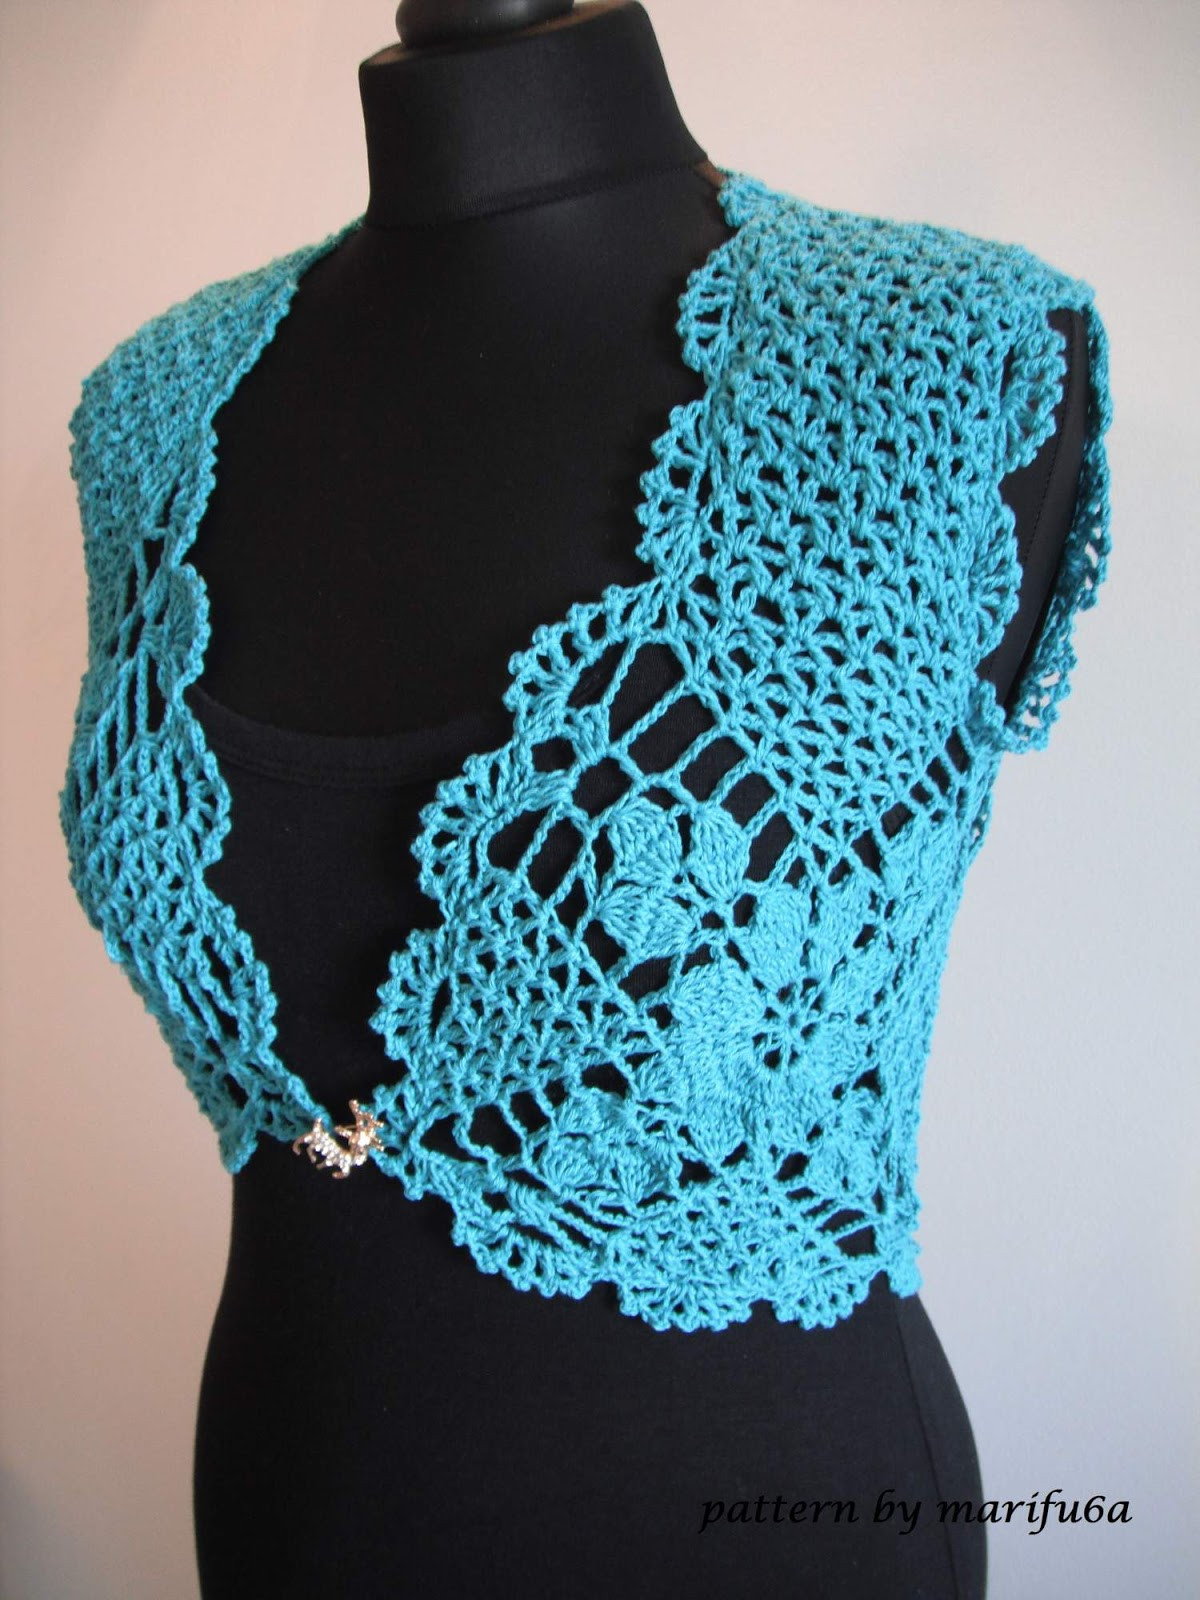 Free Crochet Bolero Patterns Awesome Free Crochet Patterns and Video Tutorials How to Crochet Of Charming 45 Photos Free Crochet Bolero Patterns